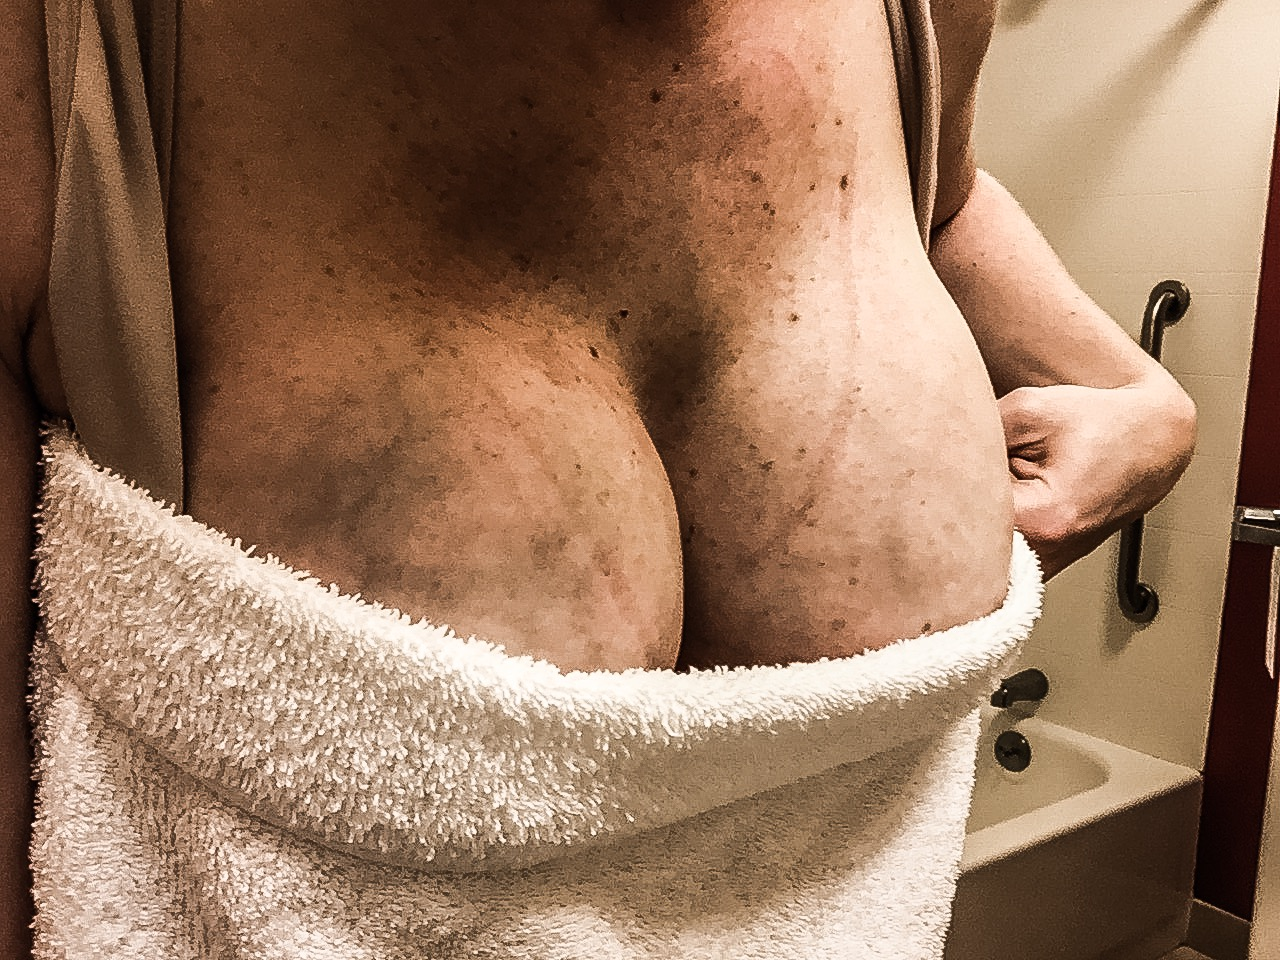 Engorgement cause mastitis and clogged milk ducts early in motherhood. It was difficult to reduce my engorgement.